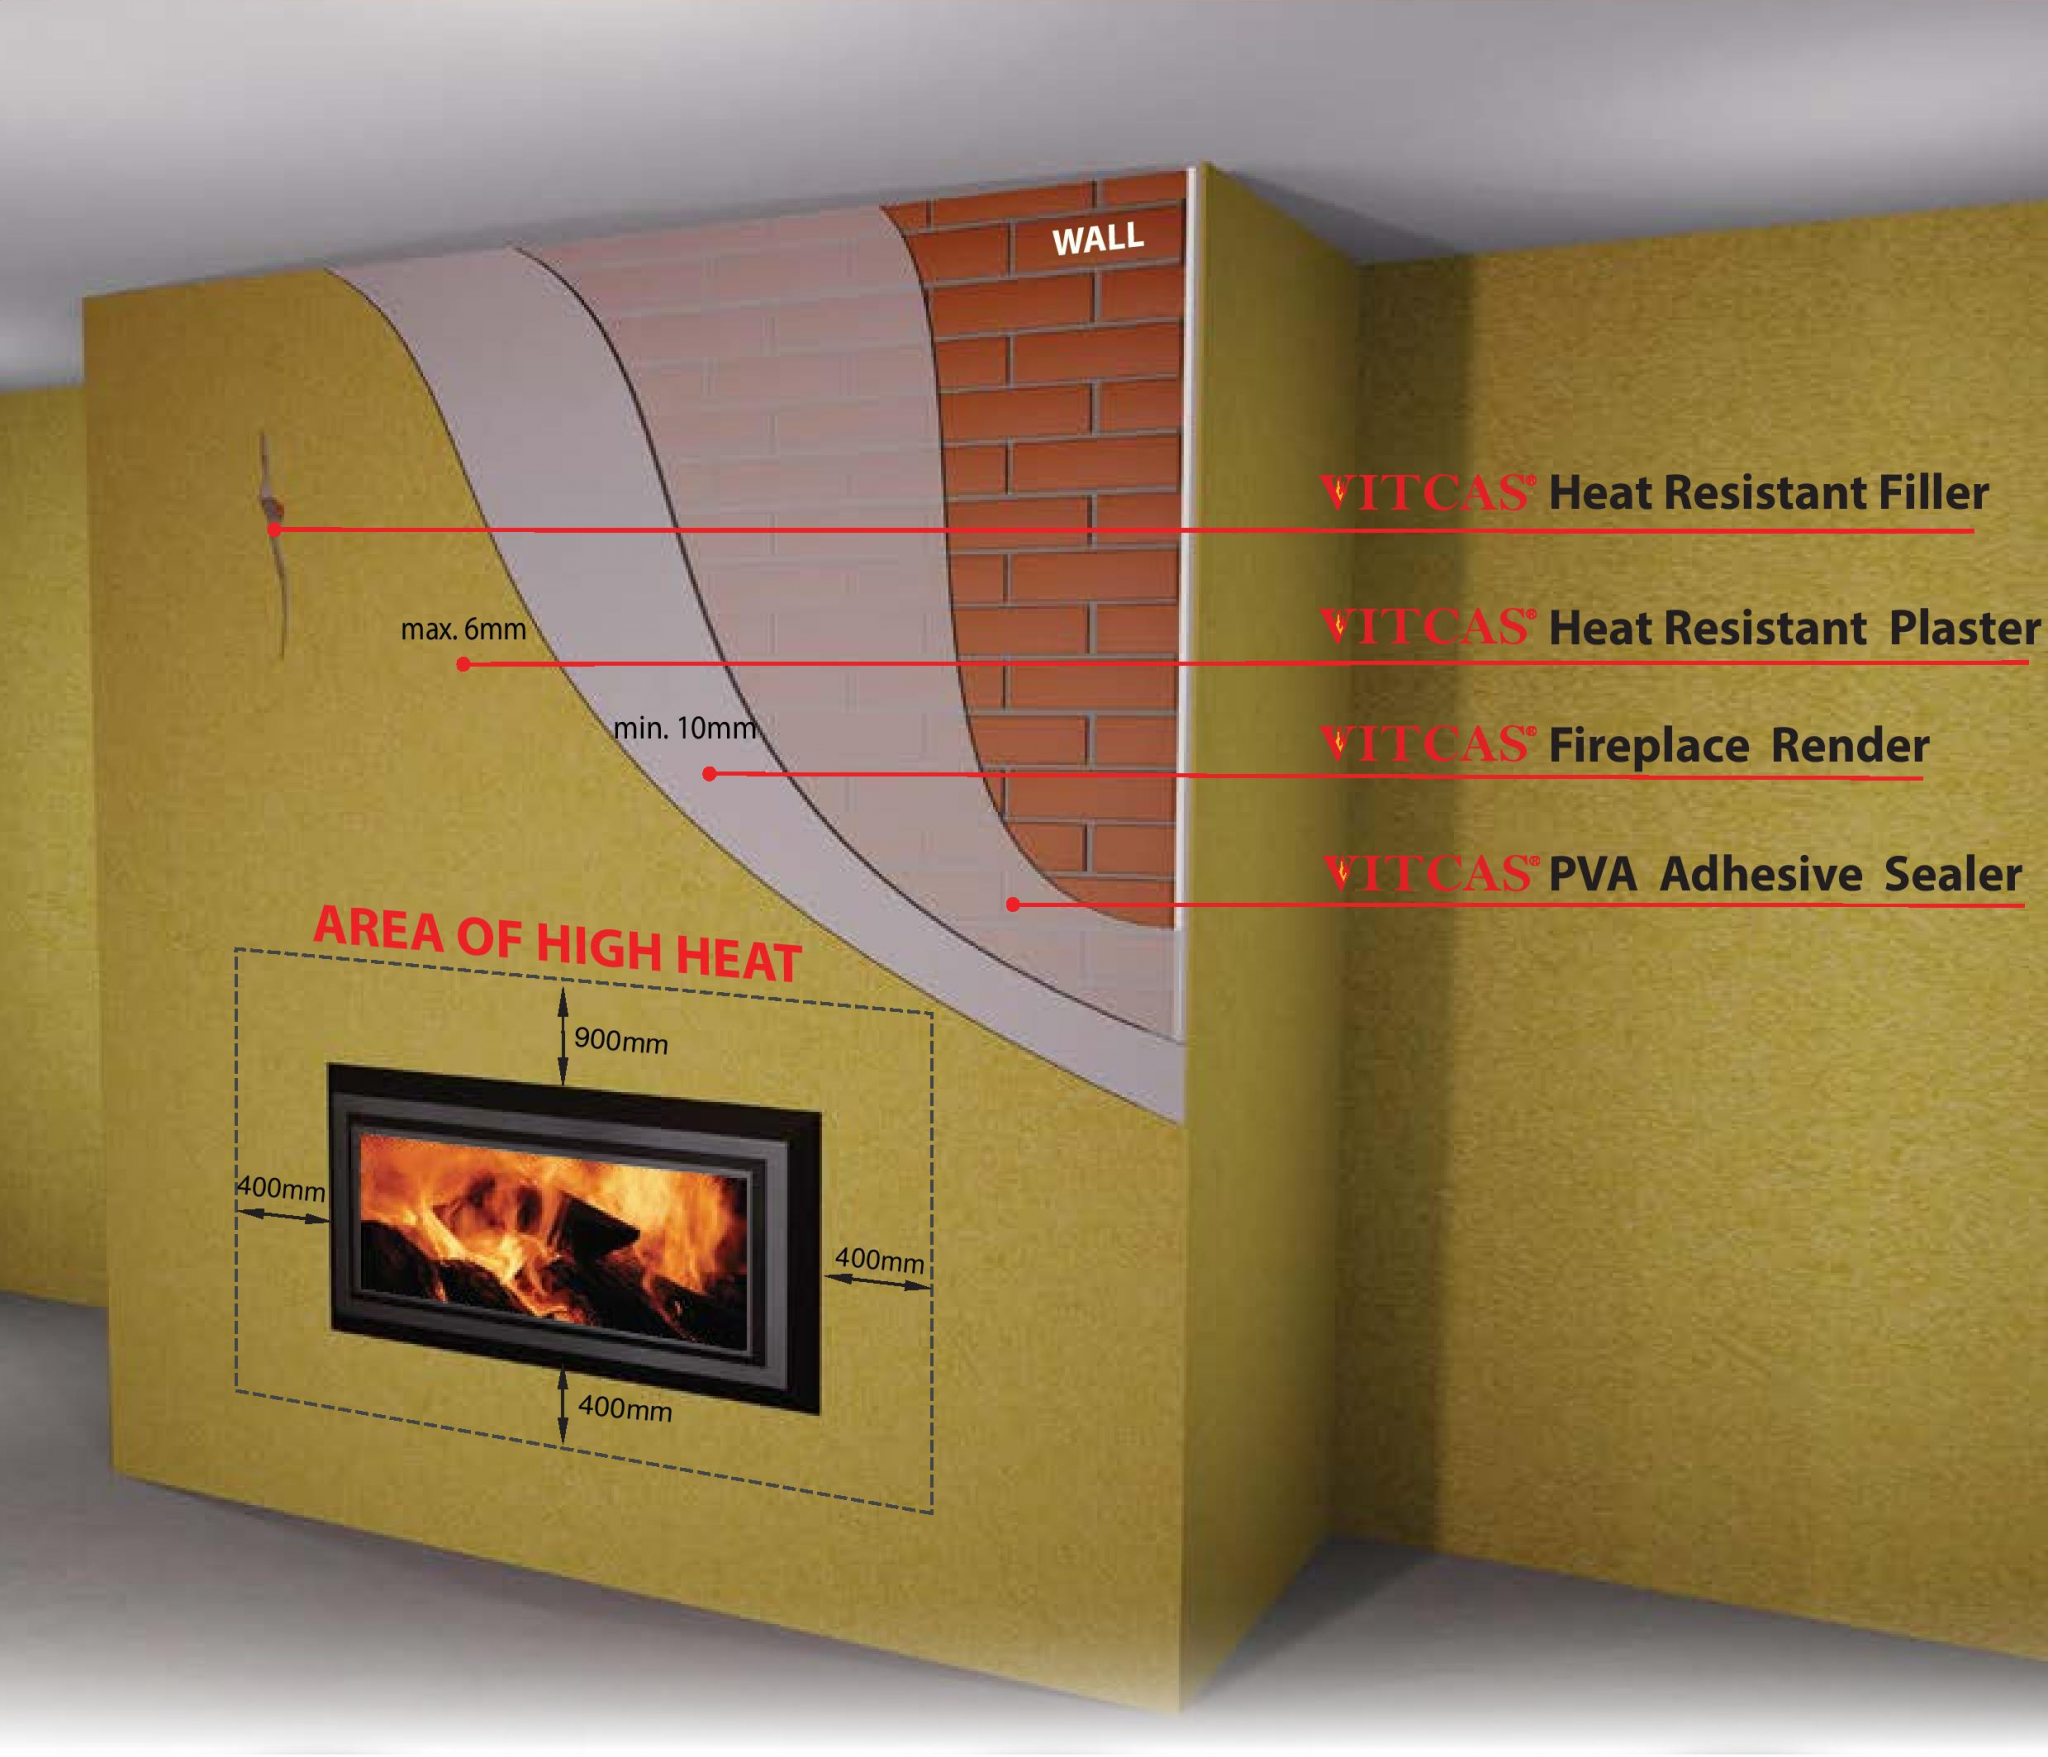 Heat Resistant Plaster Plastering A Fireplace